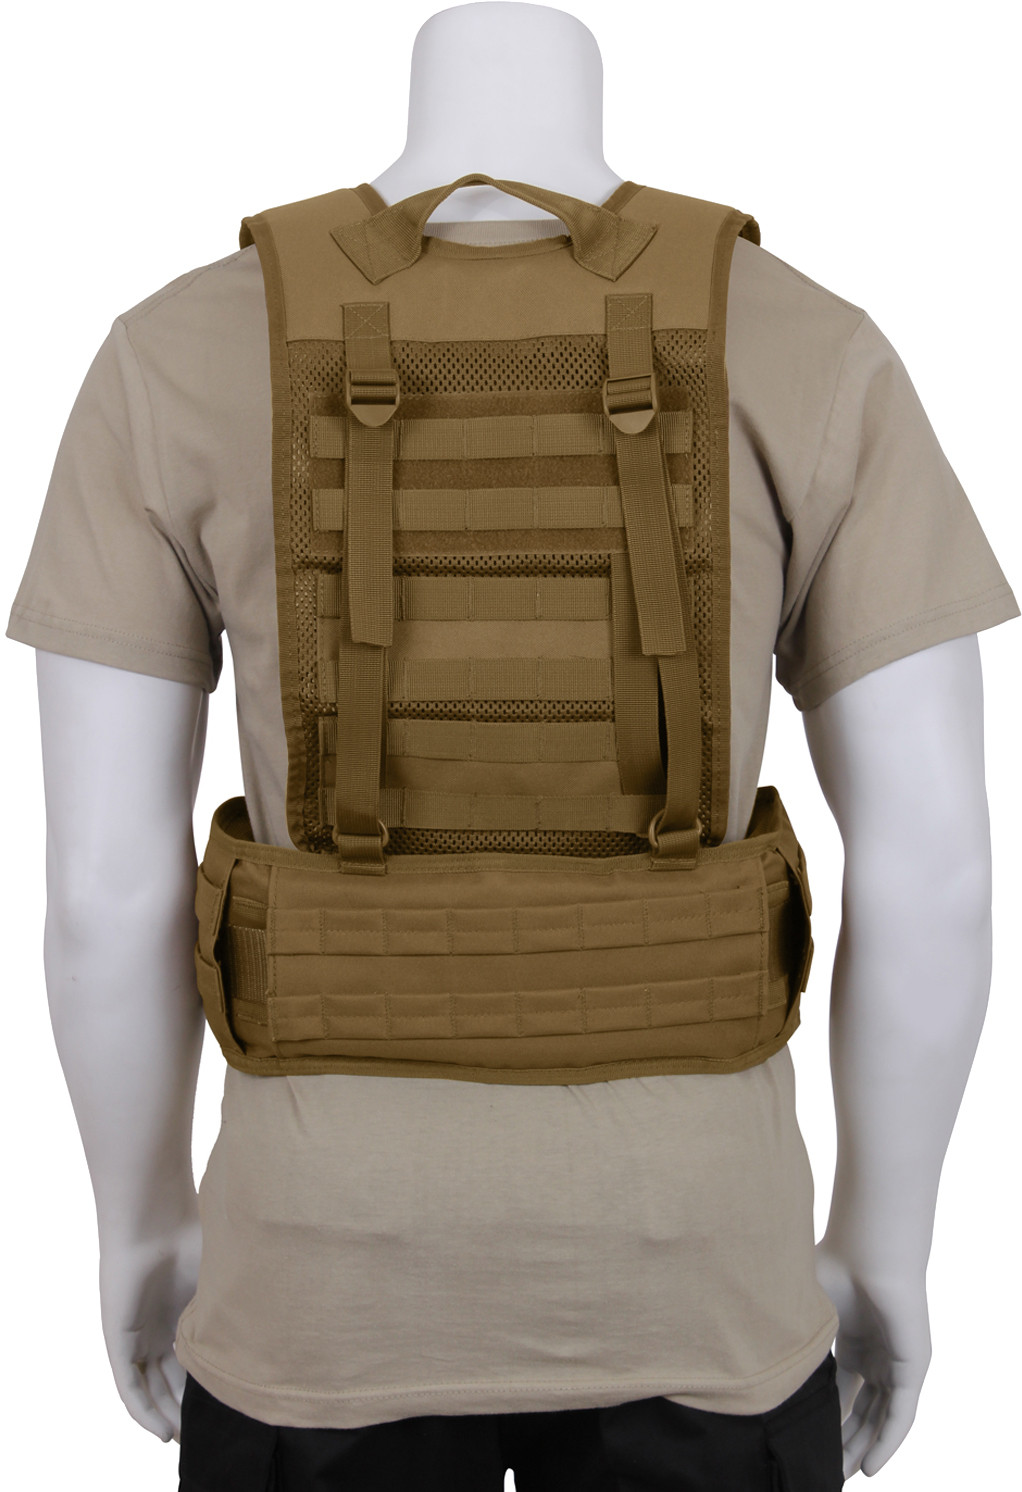 ... Coyote Brown Military MOLLE Battle Belt Load Bearing Tactical Police  Harness 0684c46ee50